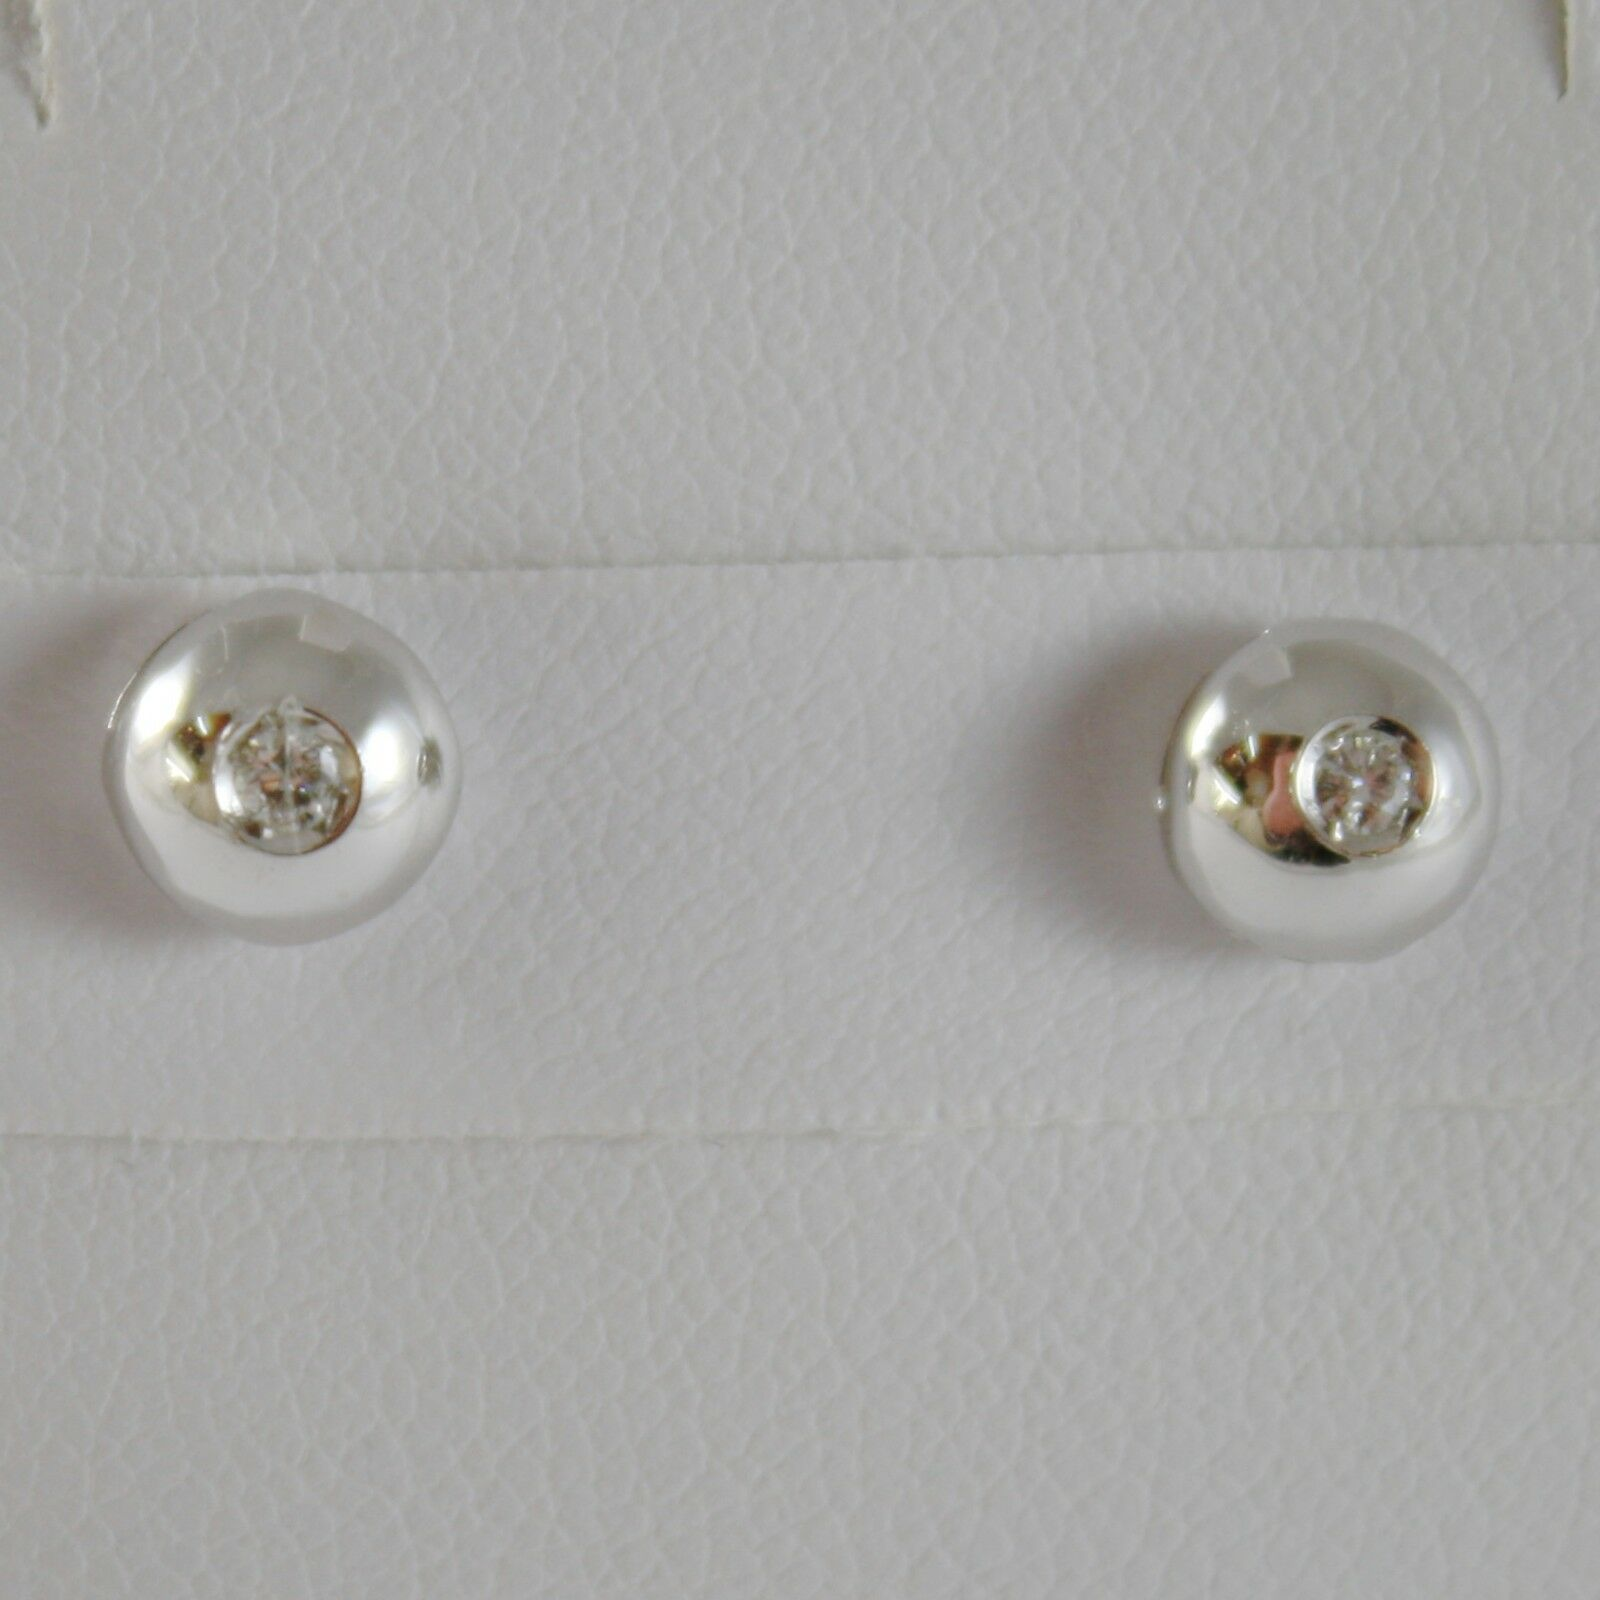 18K WHITE gold ROUND EARRINGS WITH DIAMOND DIAMONDS 0.05 CARATS, MADE IN ITALY